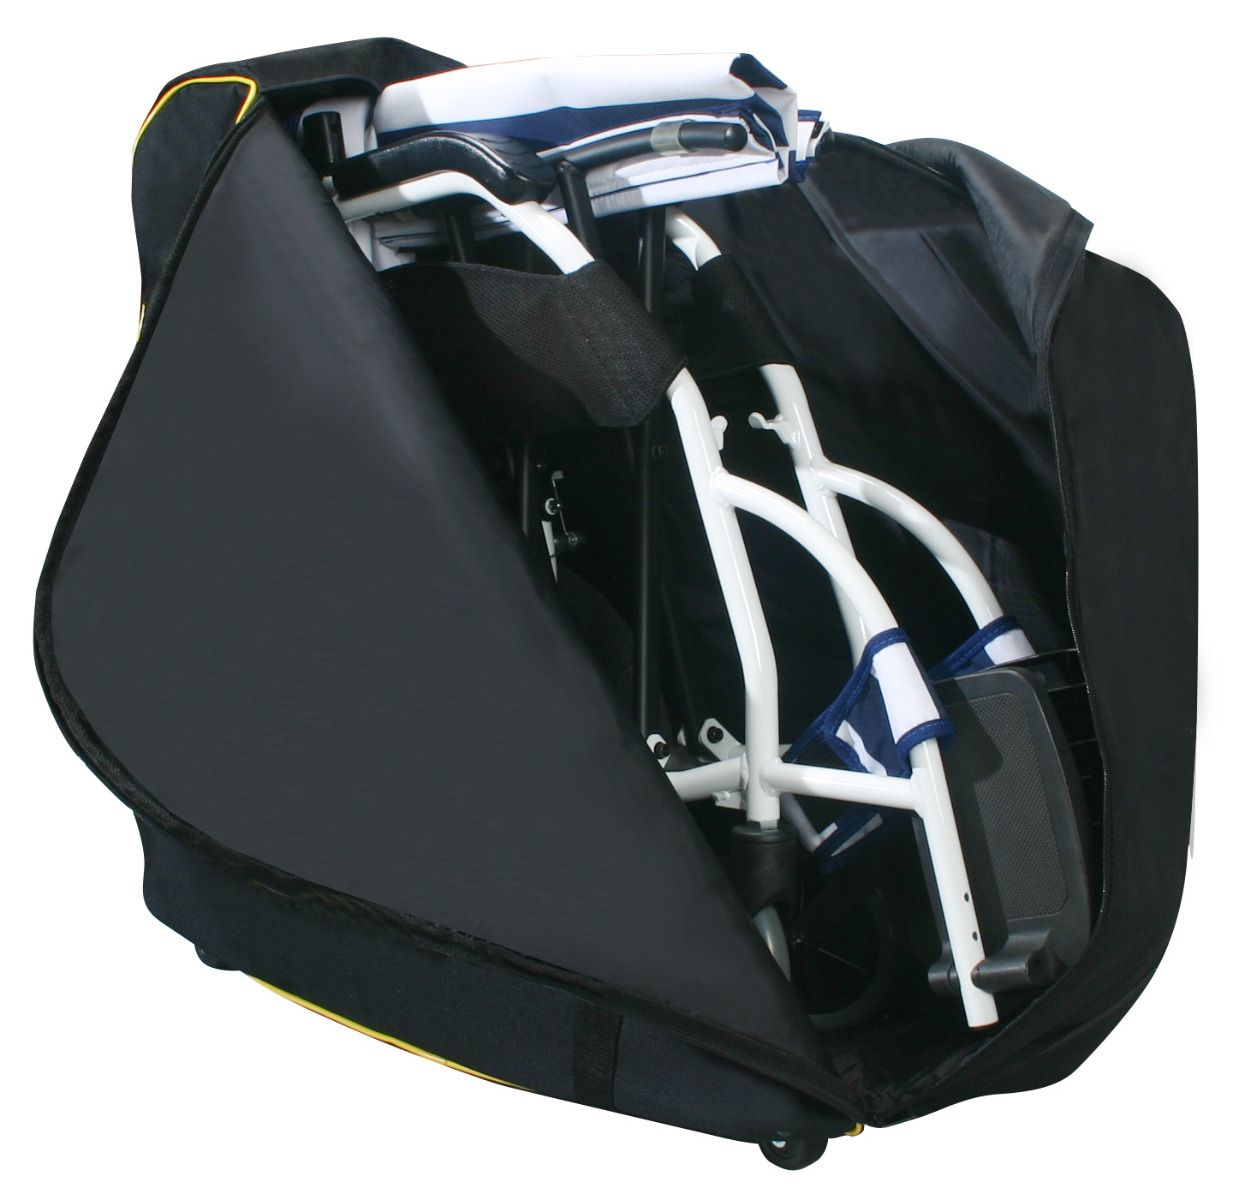 A strong wheeled bag for transporting wheelchairs